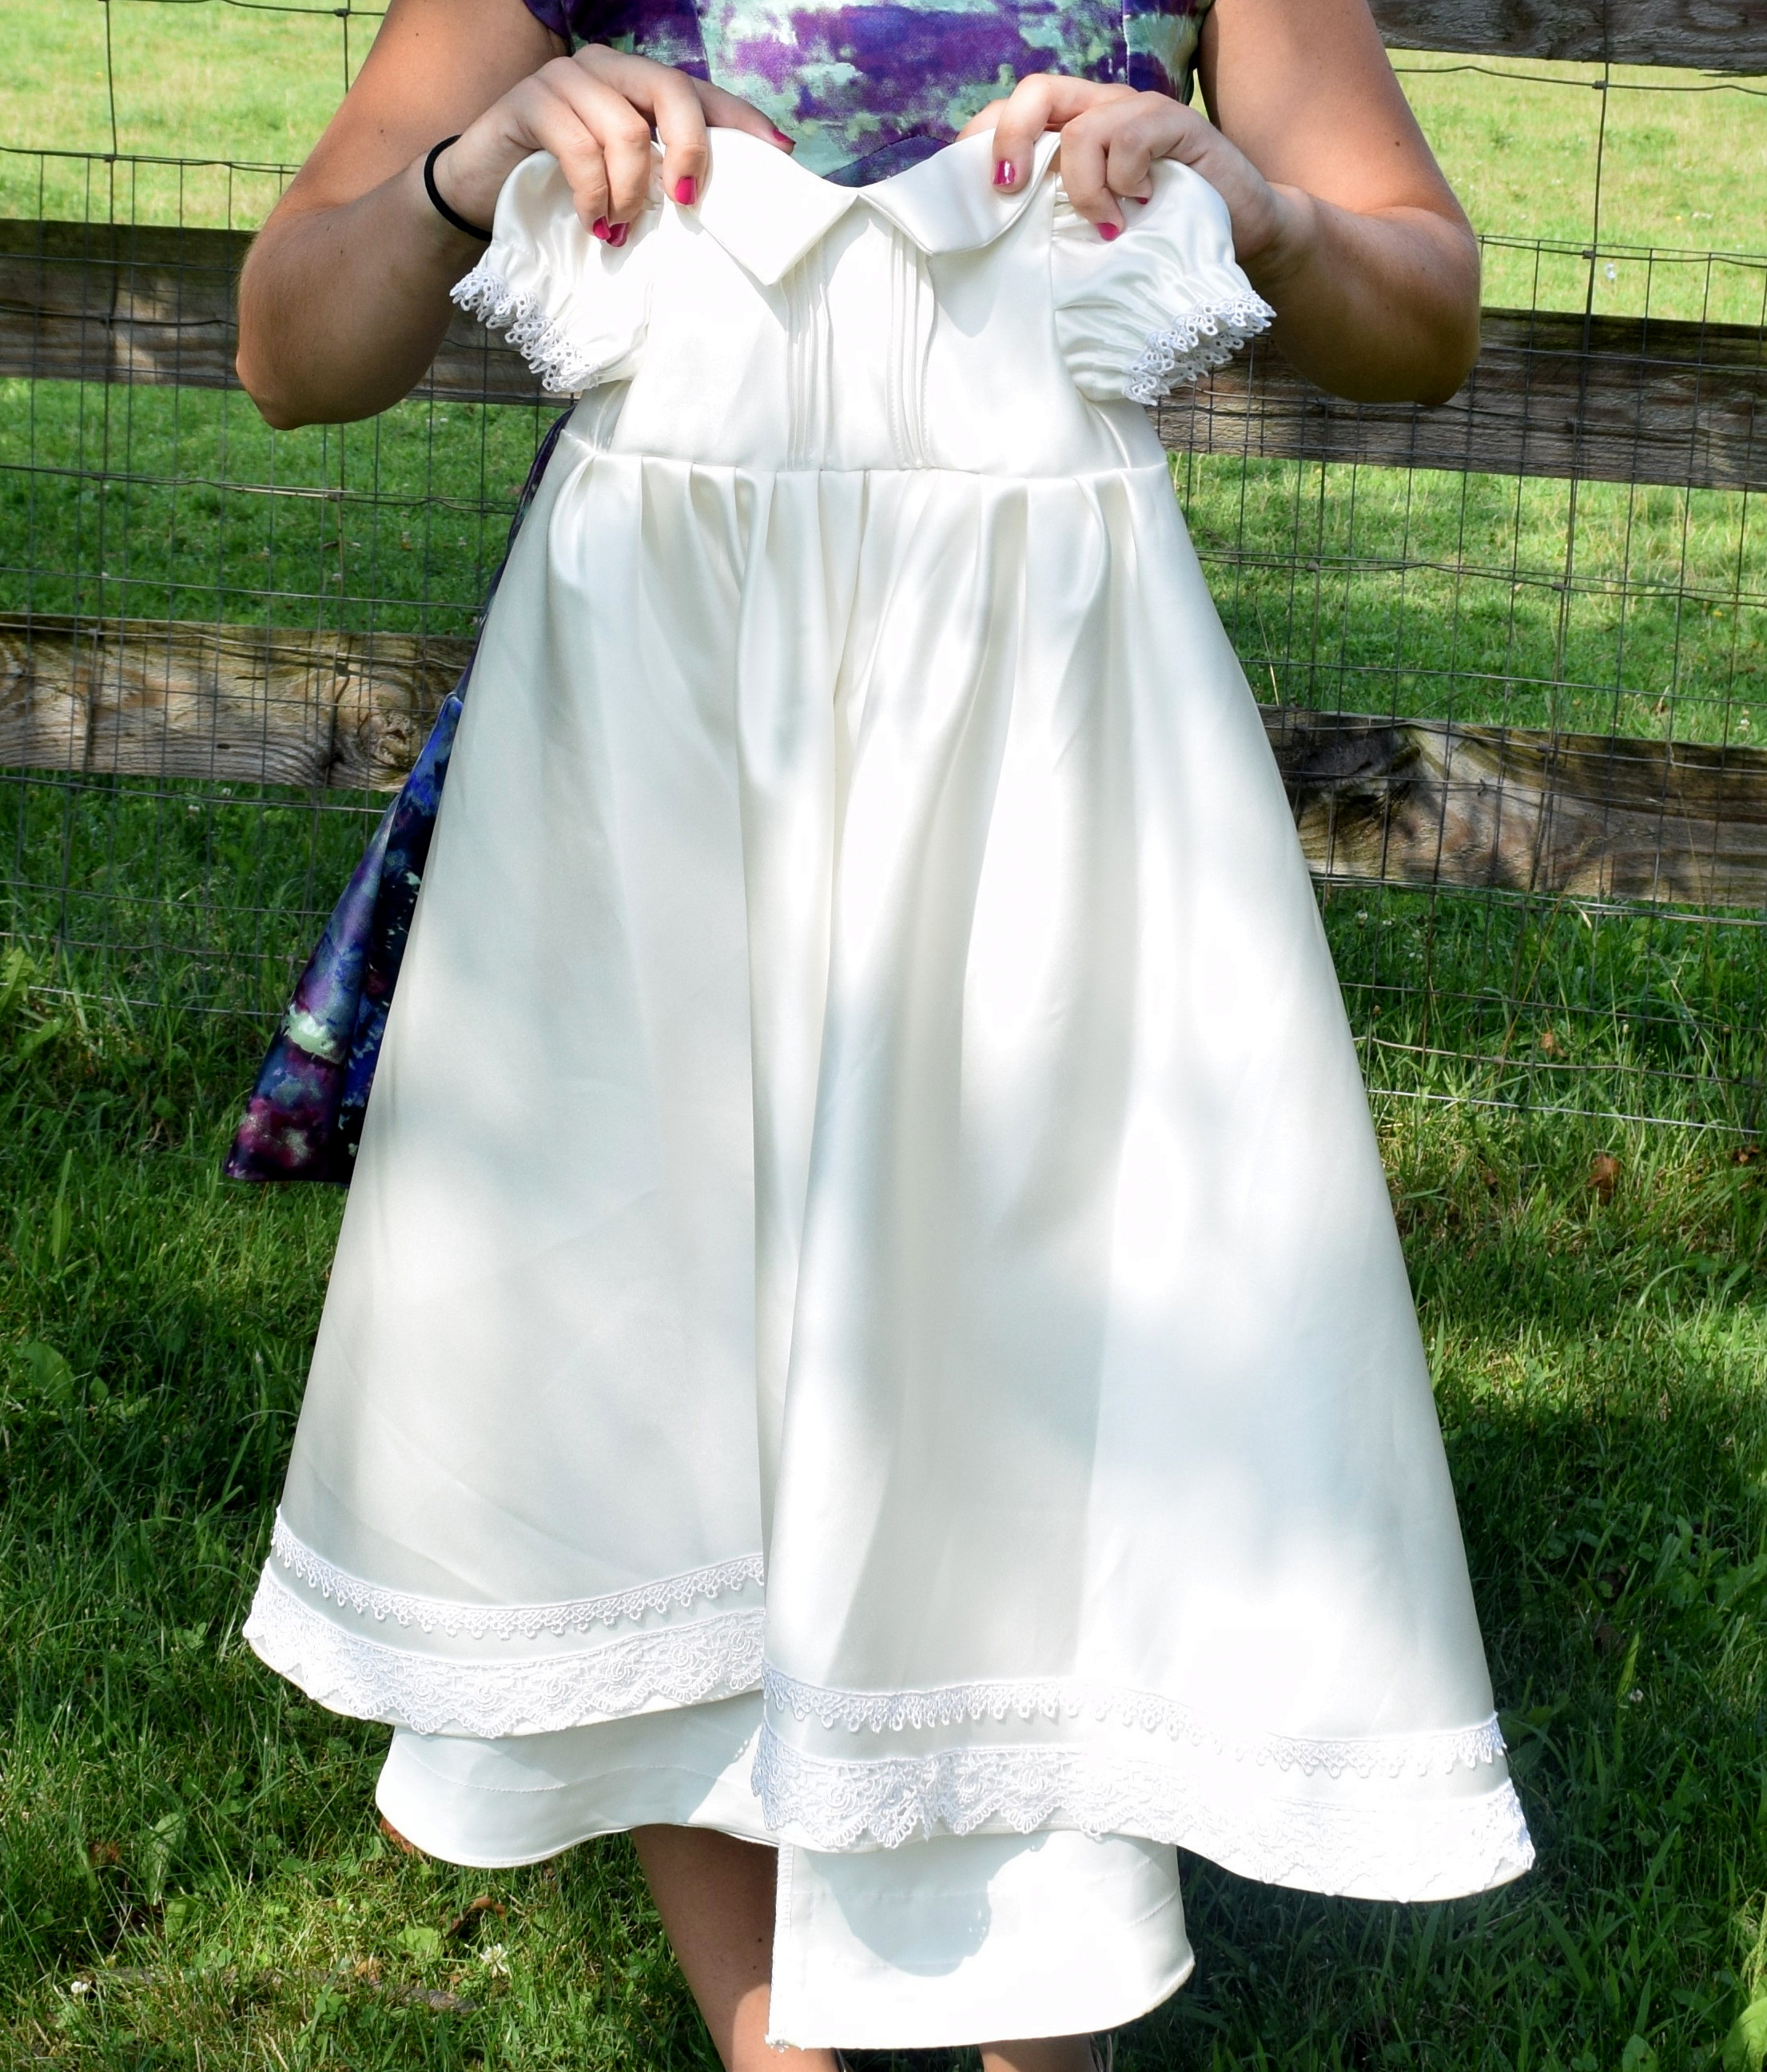 Christening Gowns From Wedding Dresses: Handmade Christening Gown From Piece Of Wedding Dress